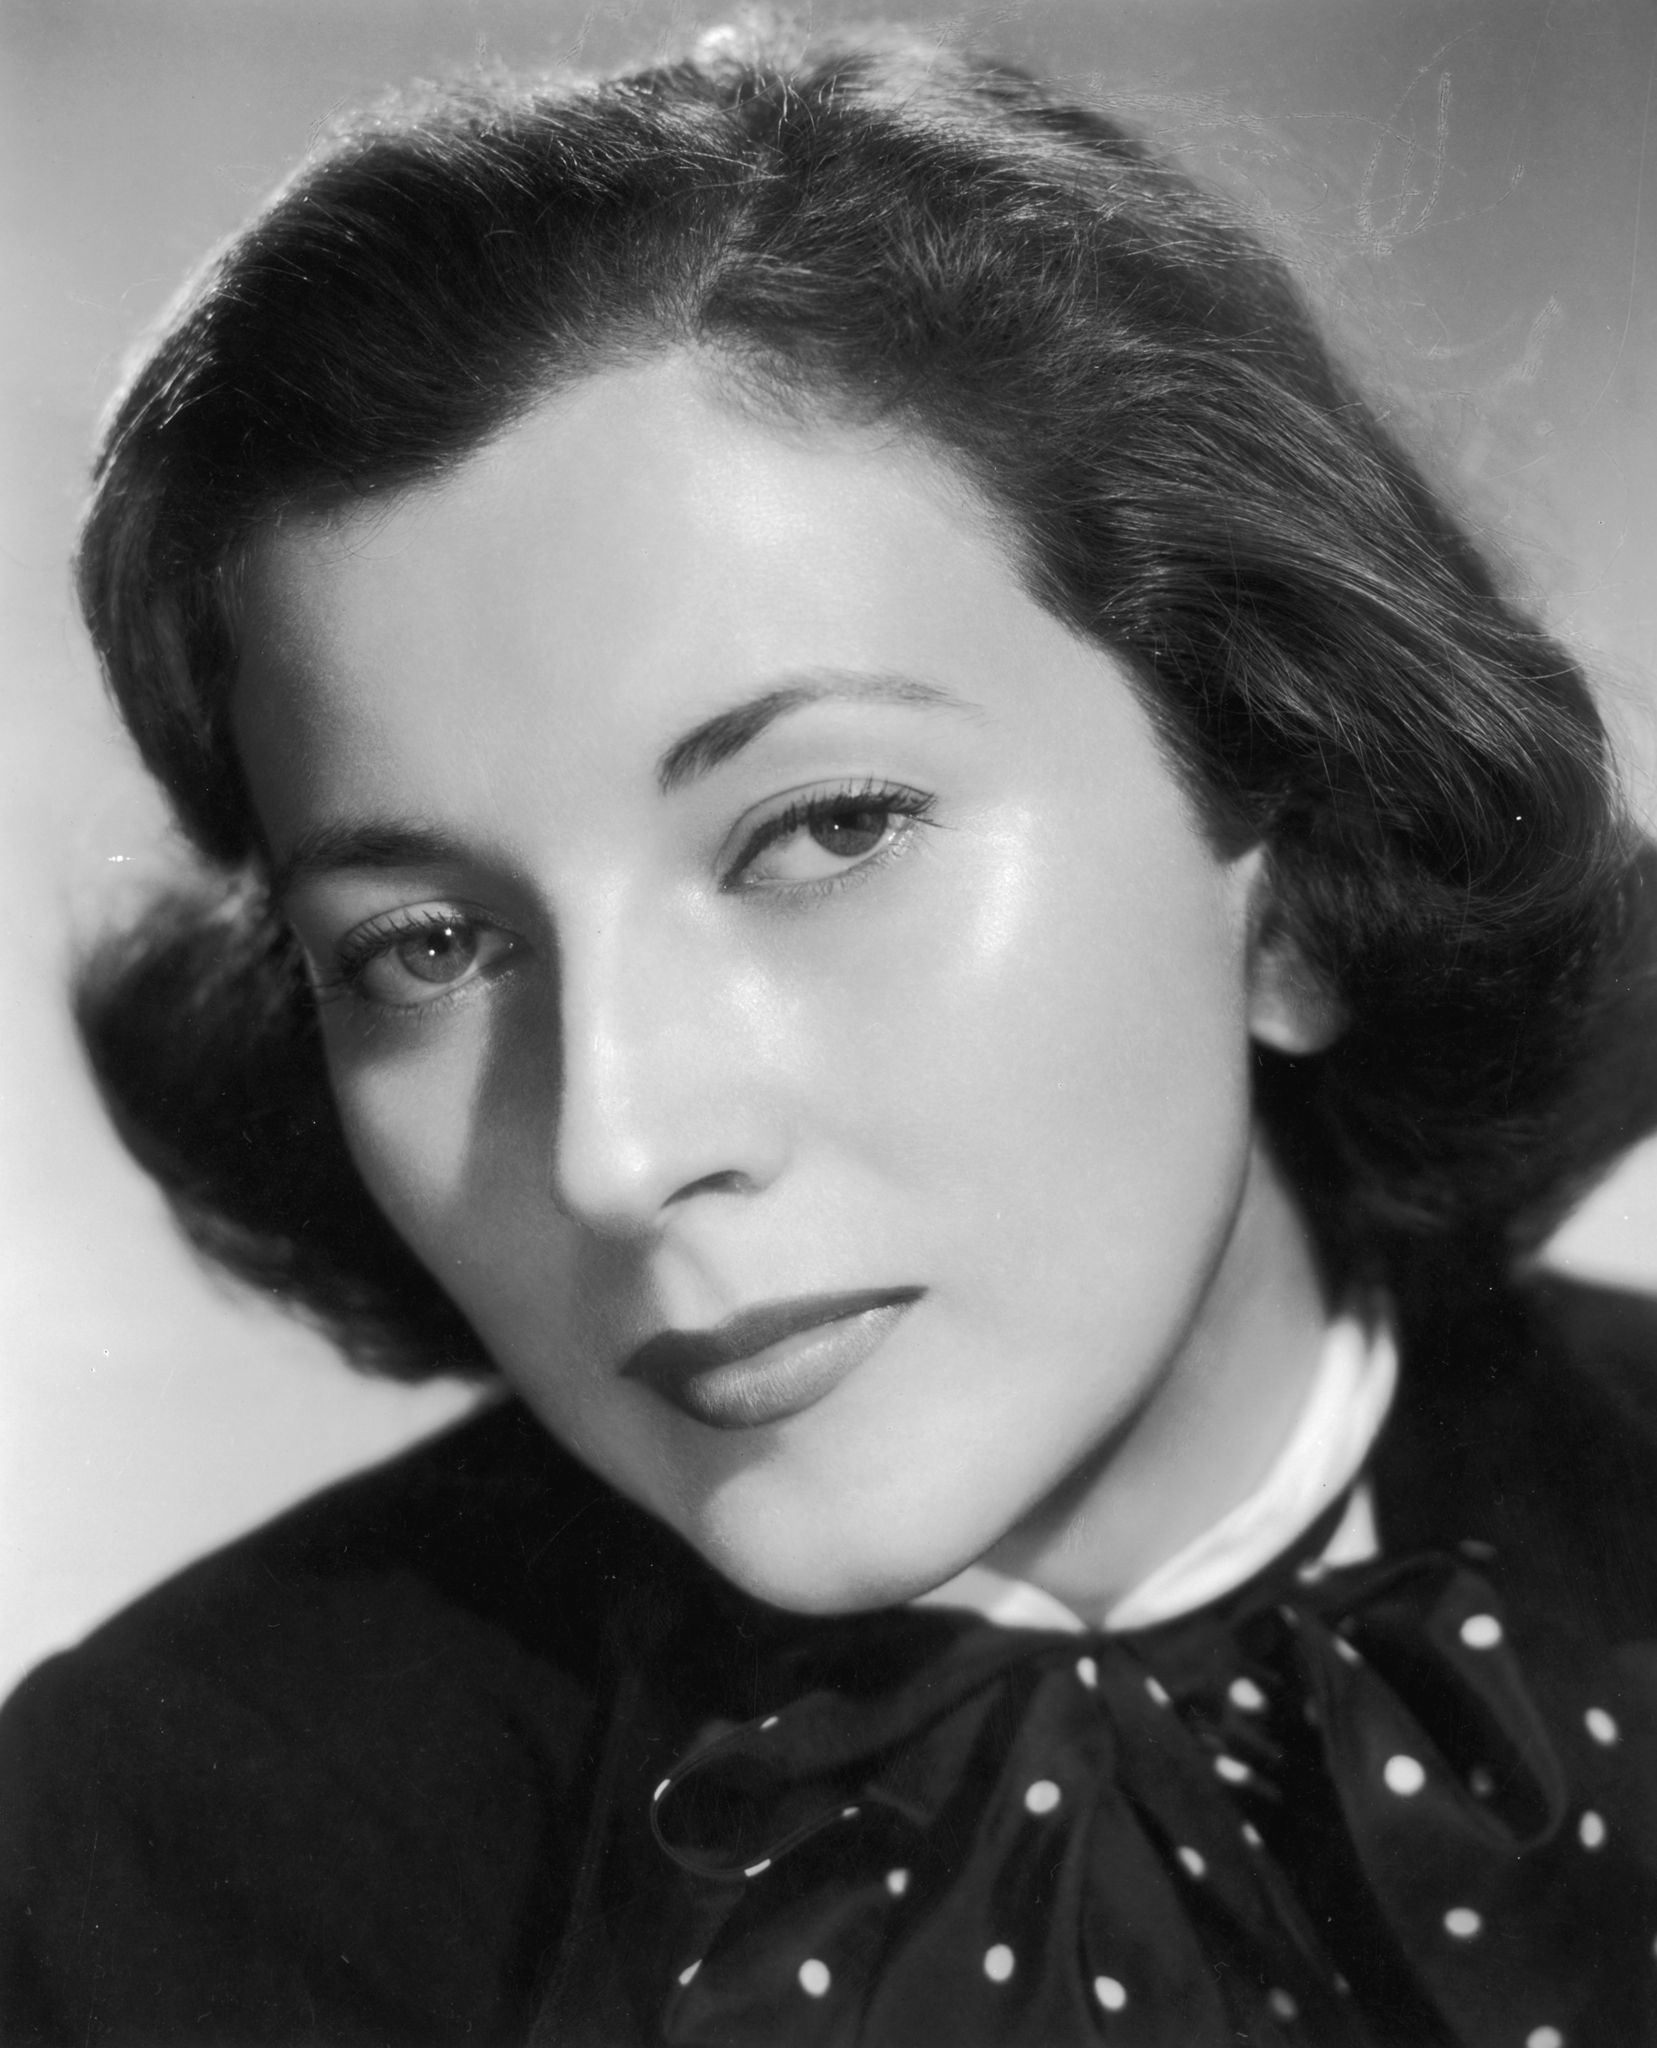 Valentina Cortese (born 1923)